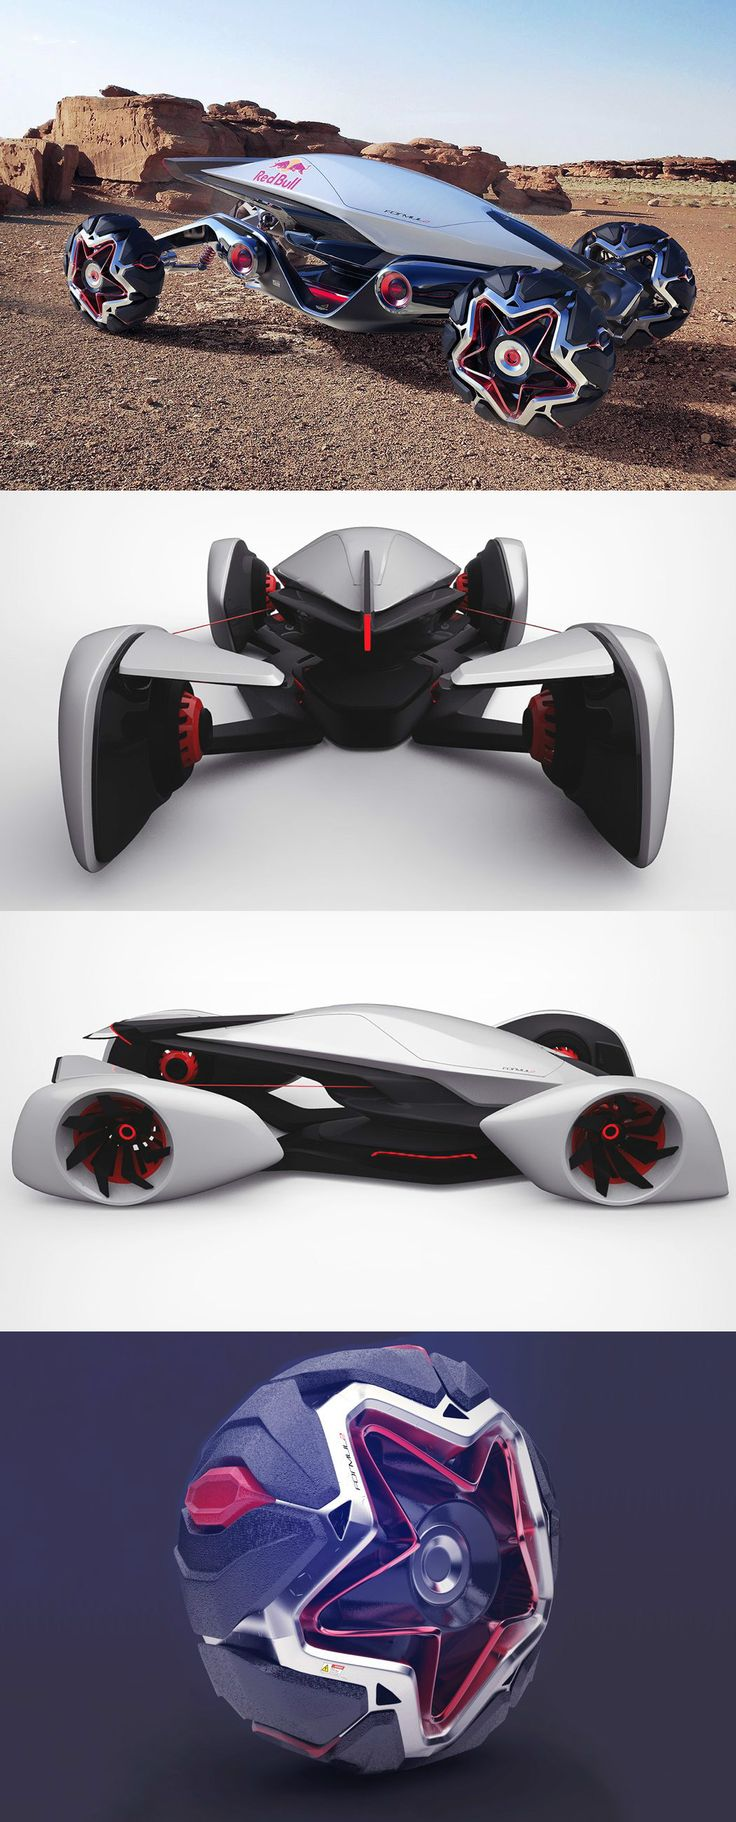 Designer Radek Štěpán has conceptualized not only an innovative roadster, but an entirely new style of racing which he calls FORMUL2… and it makes F1 seem like a total snoozefest | Read Full Story at Yanko Design